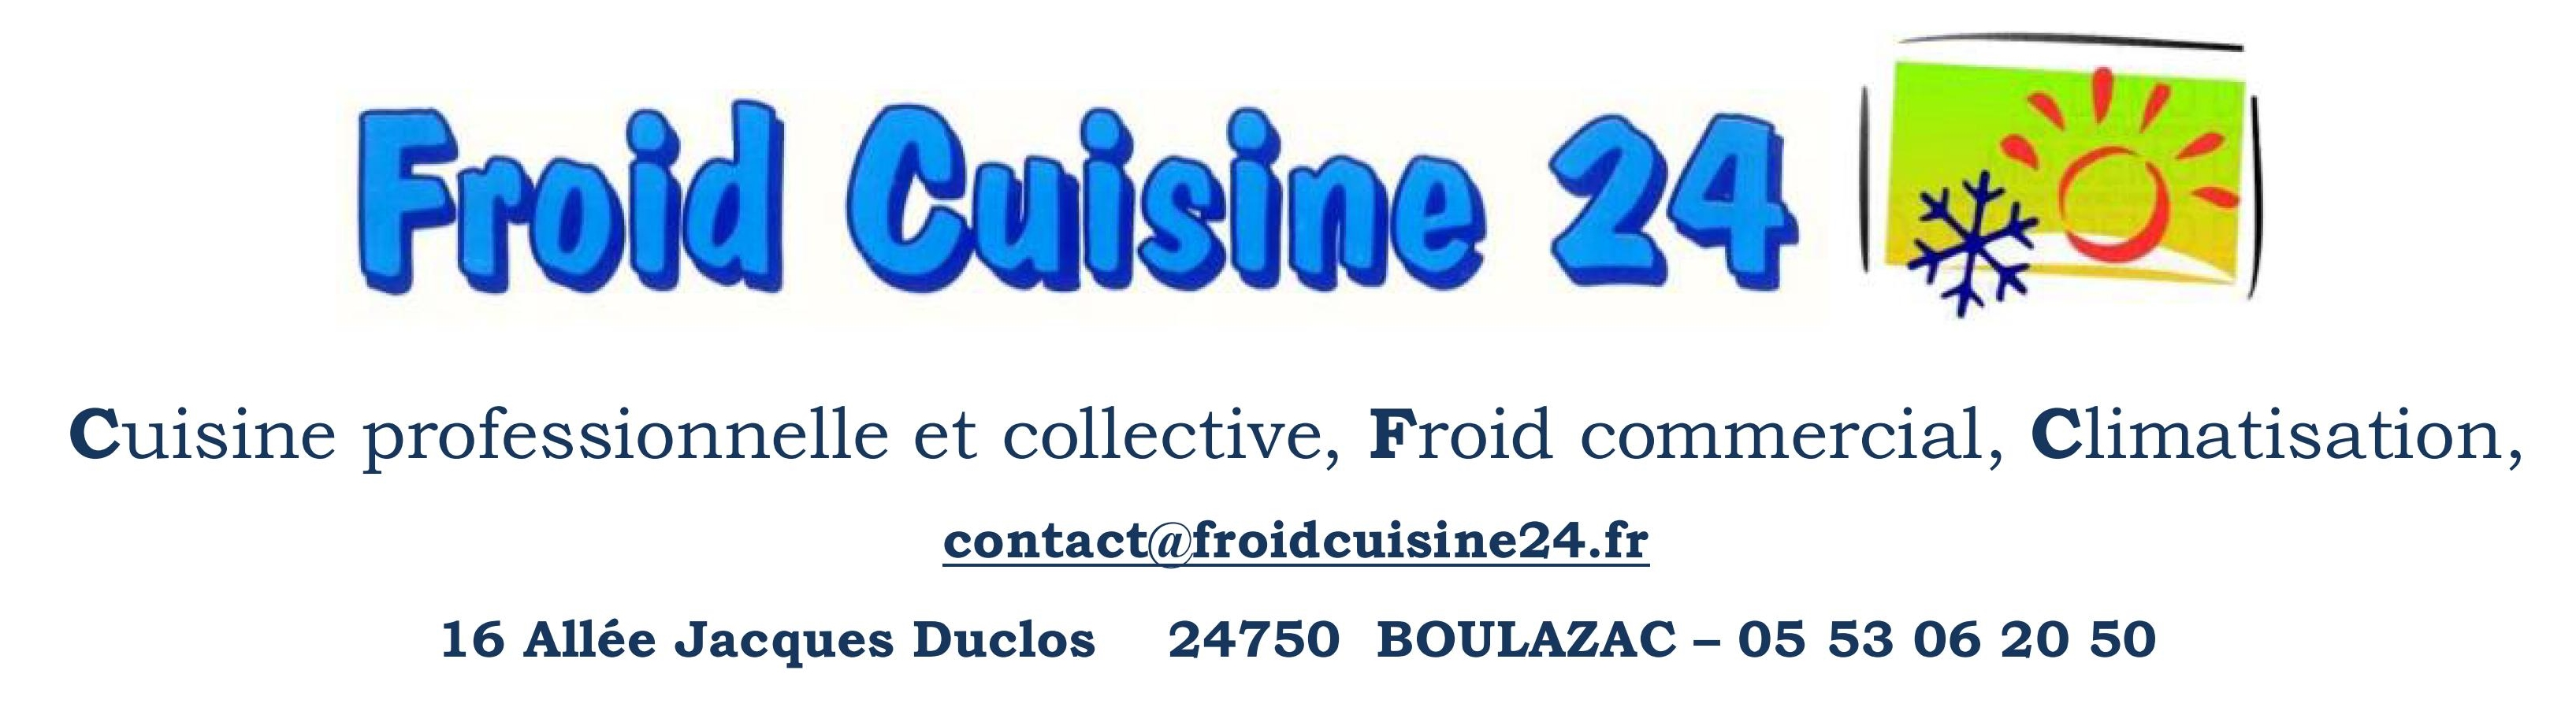 Froid Cuisine 24